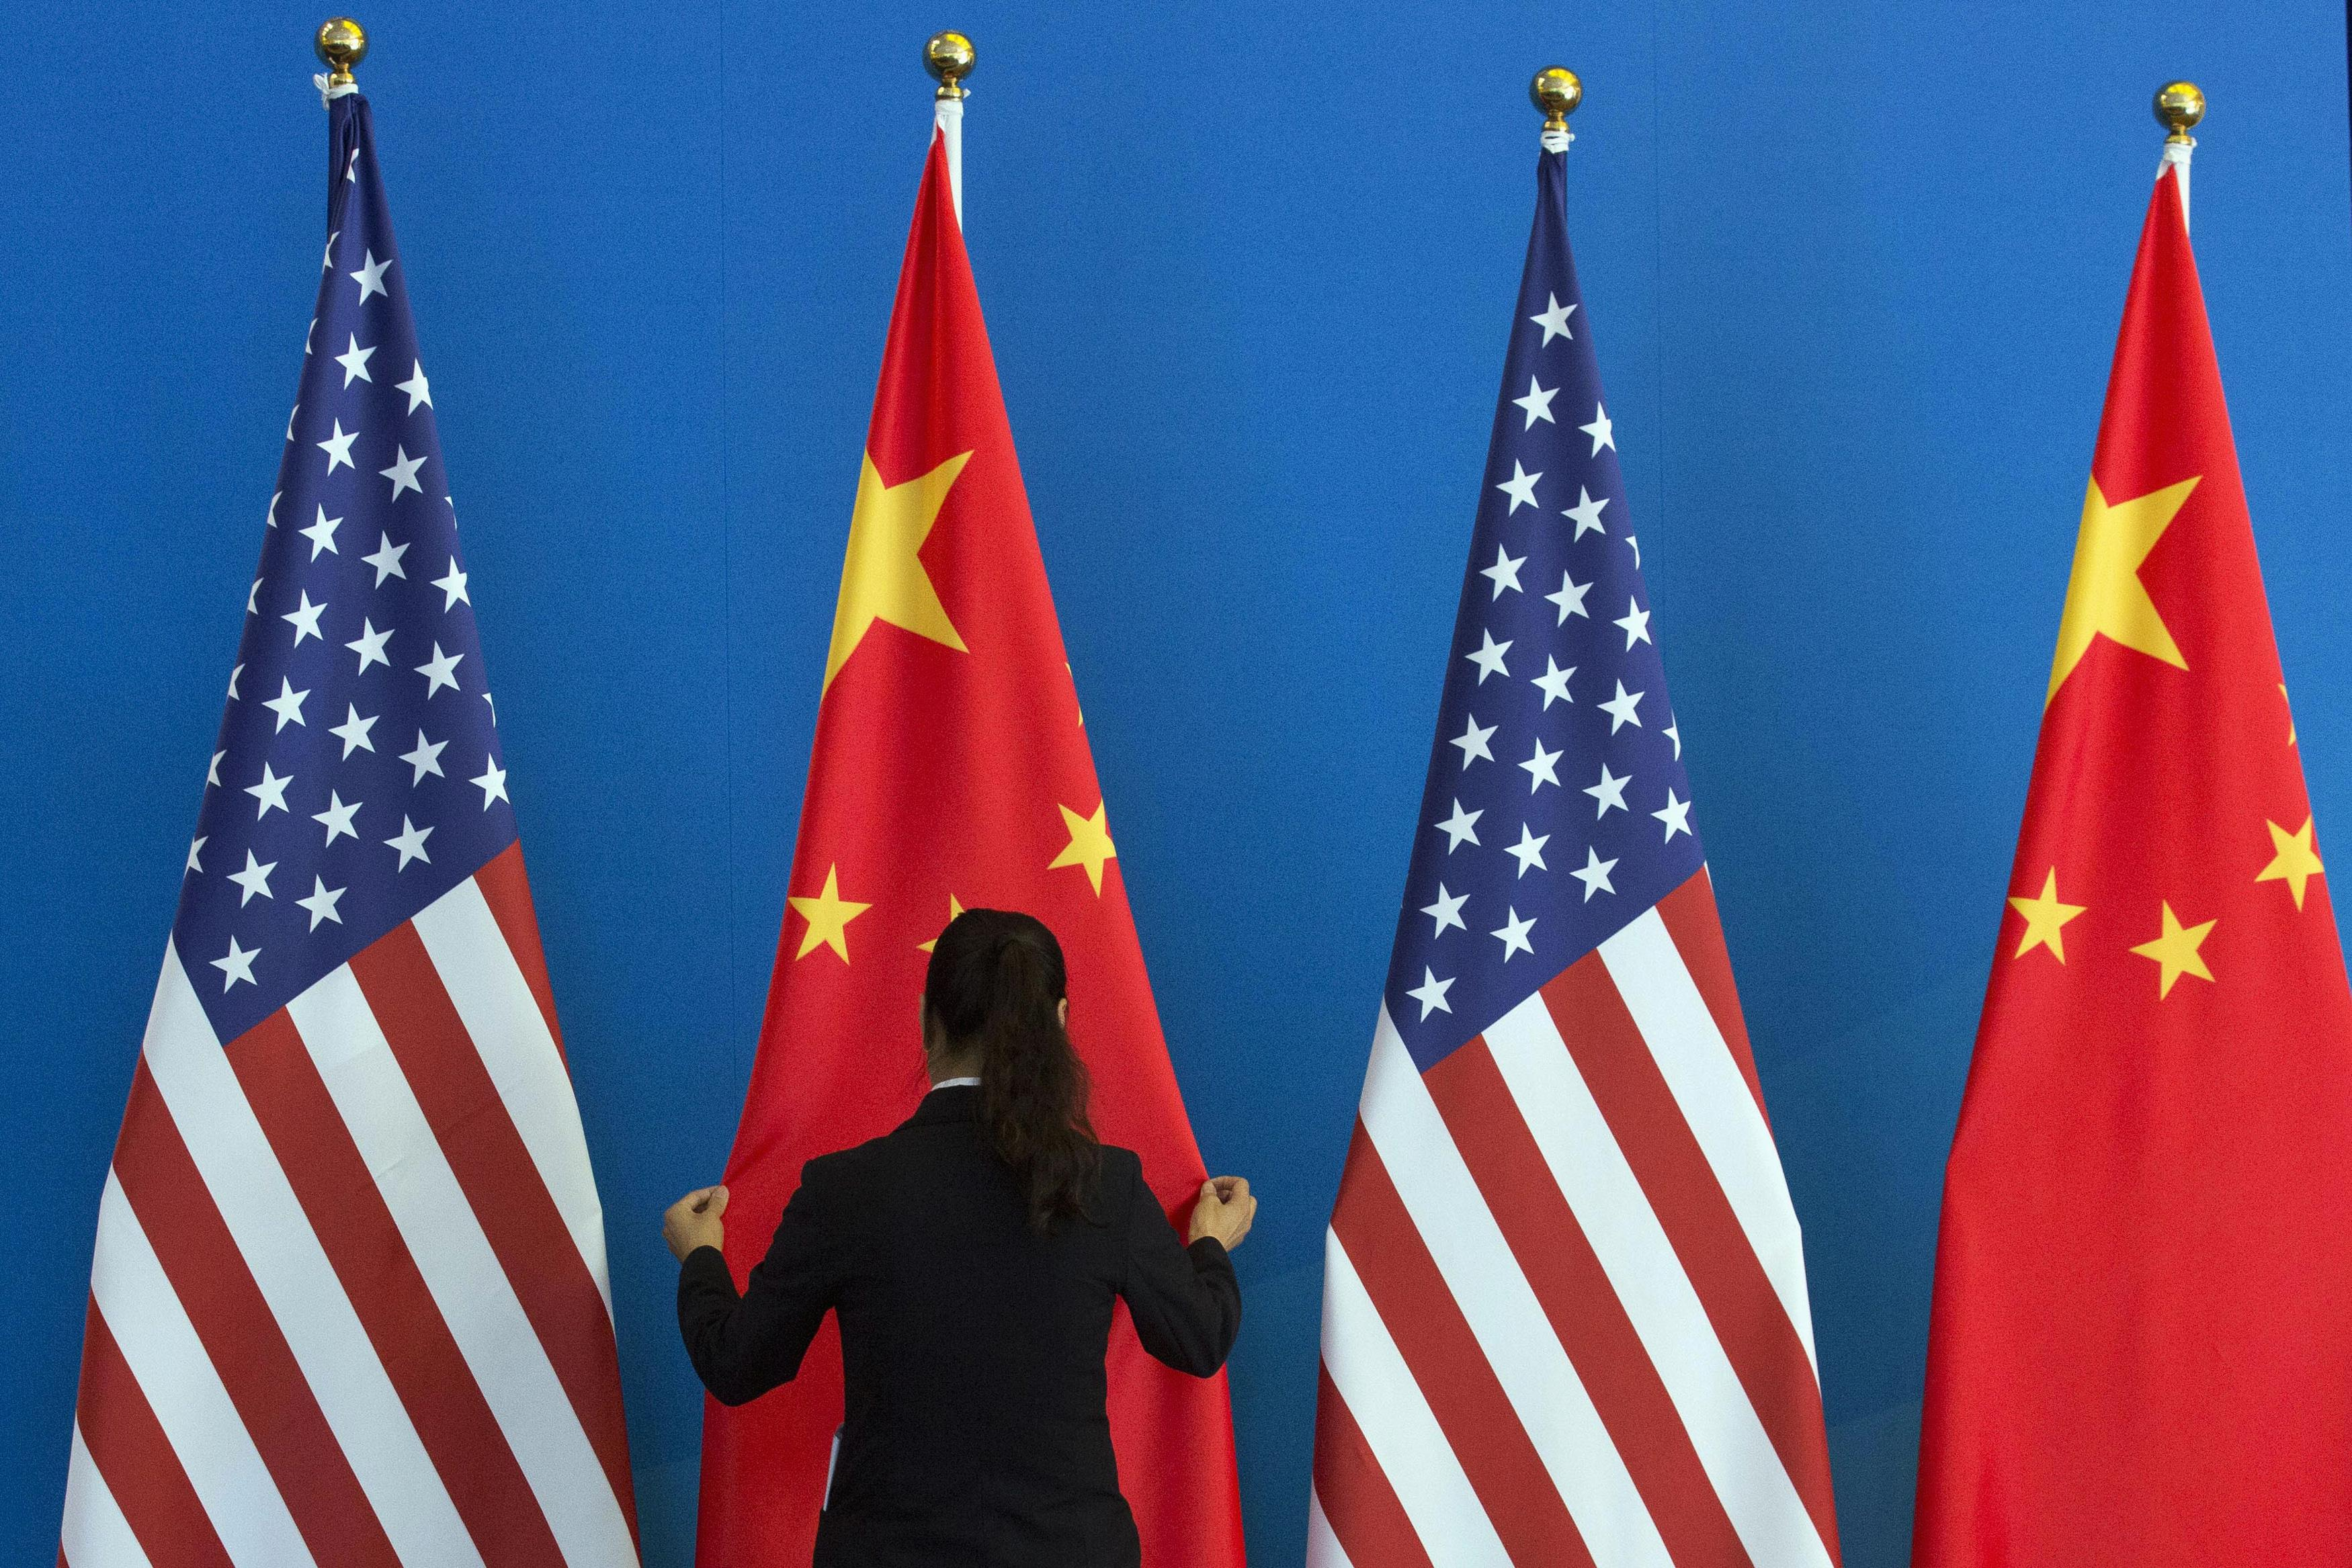 China prepared for long trade fight with the U.S.: party journal